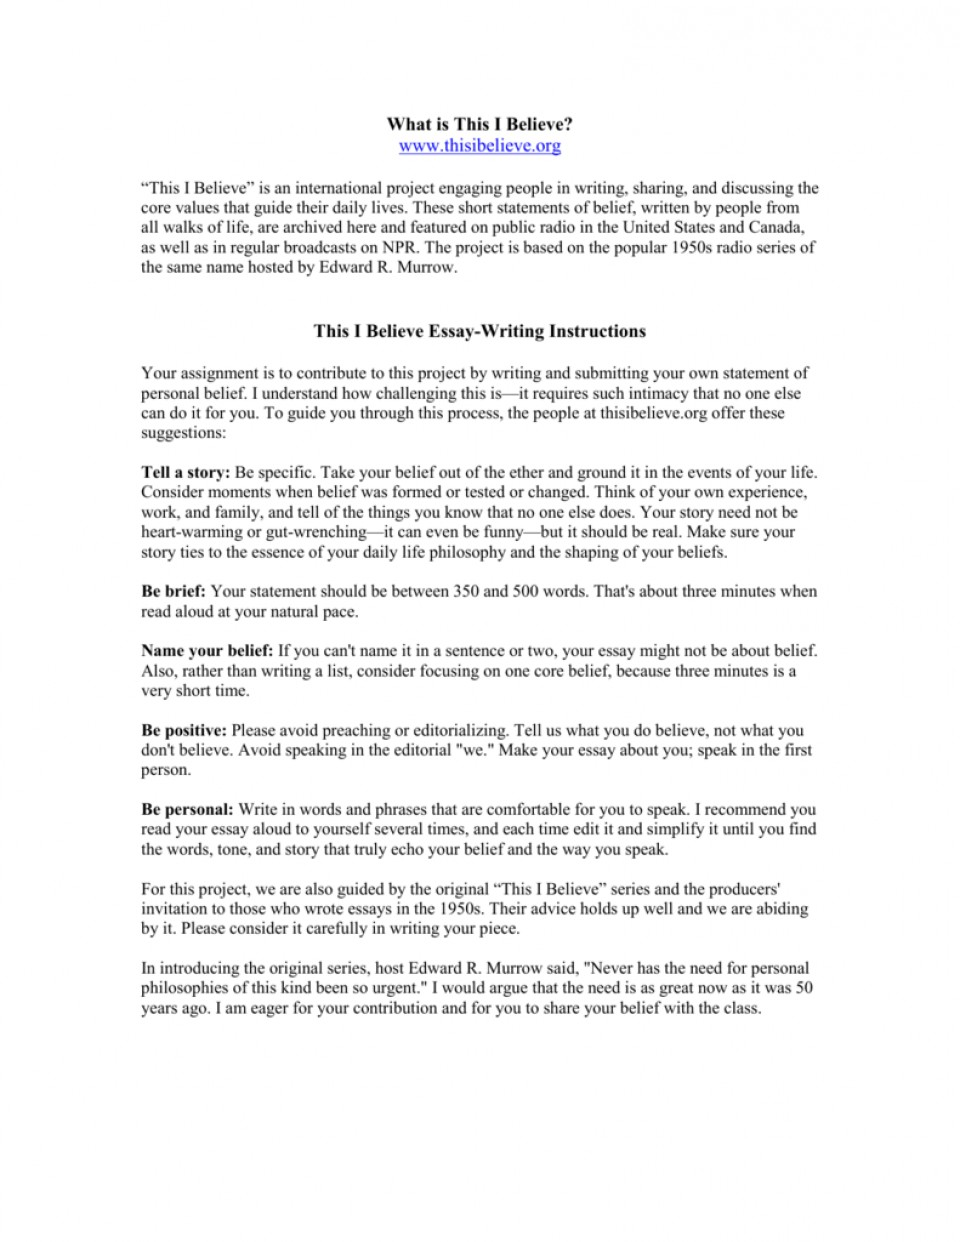 009 Essay Example How To Write This I Believe 008807226 1 Fantastic A Things On What 960